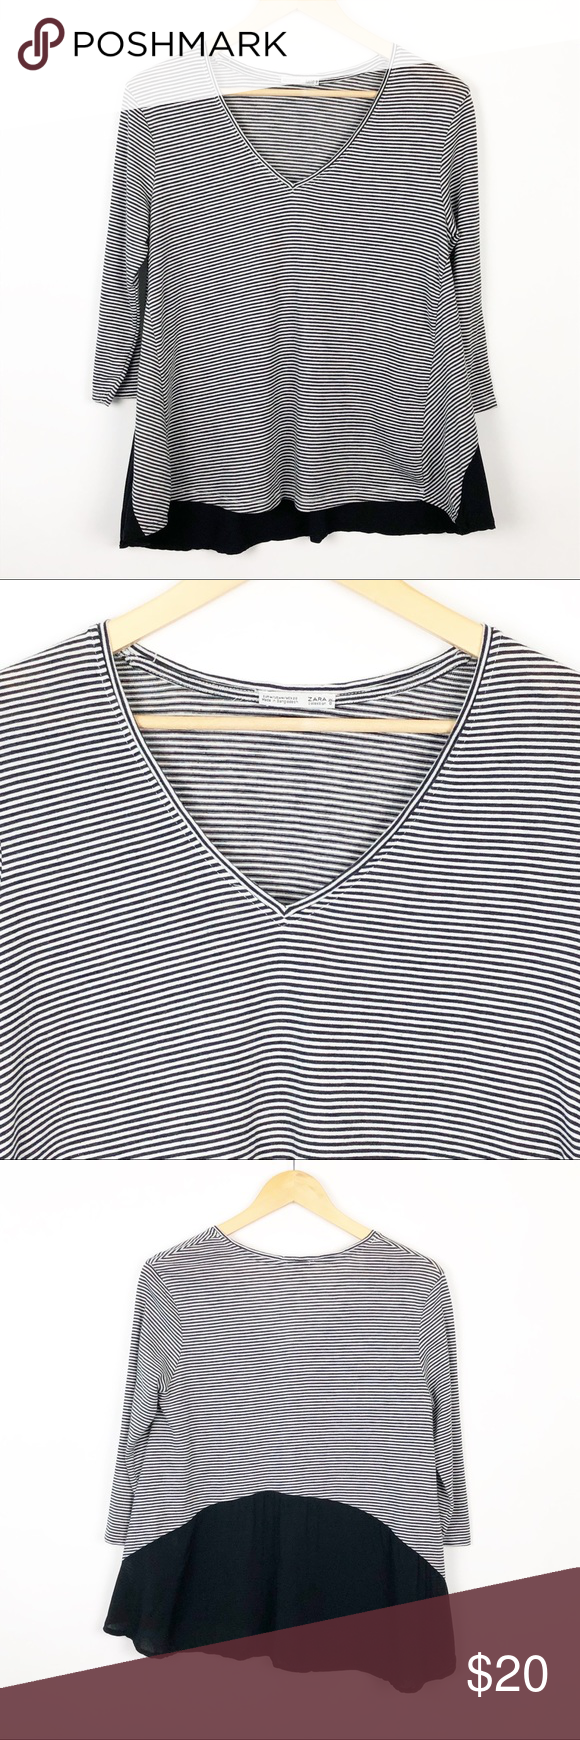 Zara Stripe Top Mixed Media Thin Black And Off White Stripes With A Black Woven Blouse On The Back Lower Portion Of The Top Striped Top Tops Clothes Design